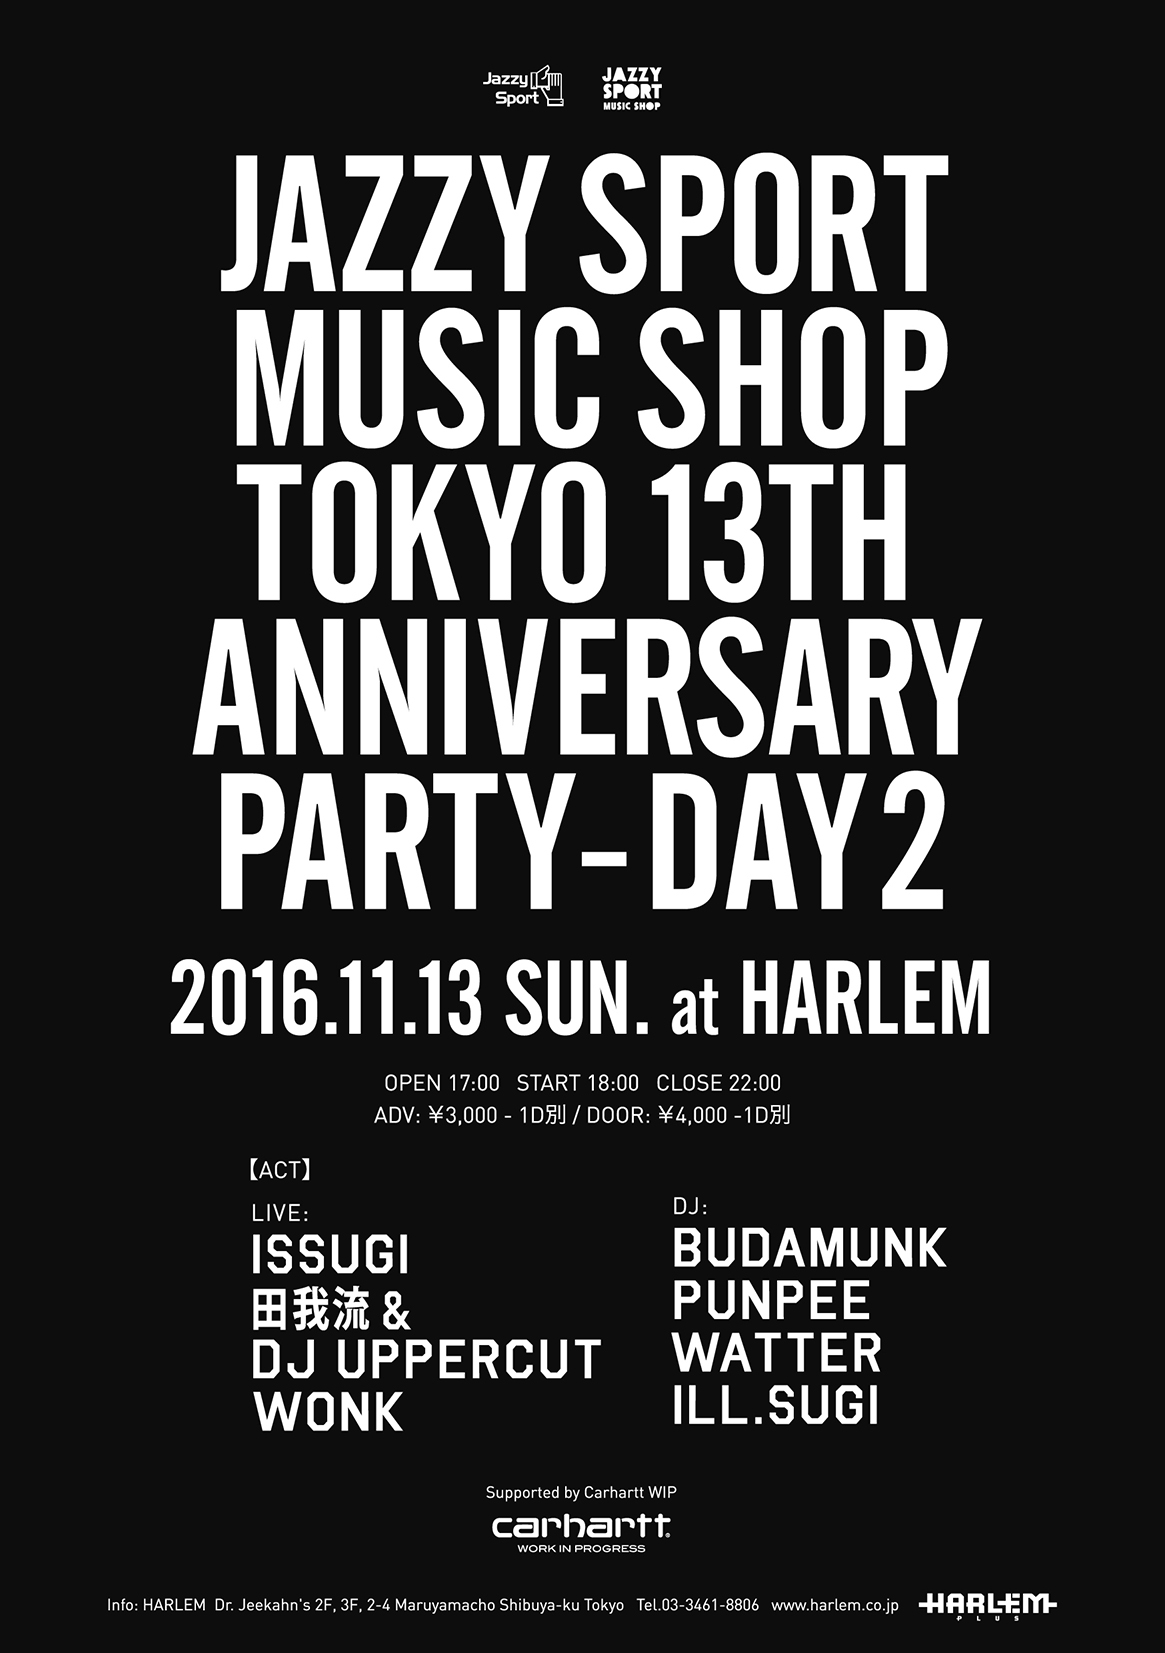 Jazzy Sport Music Shop 13th Day2